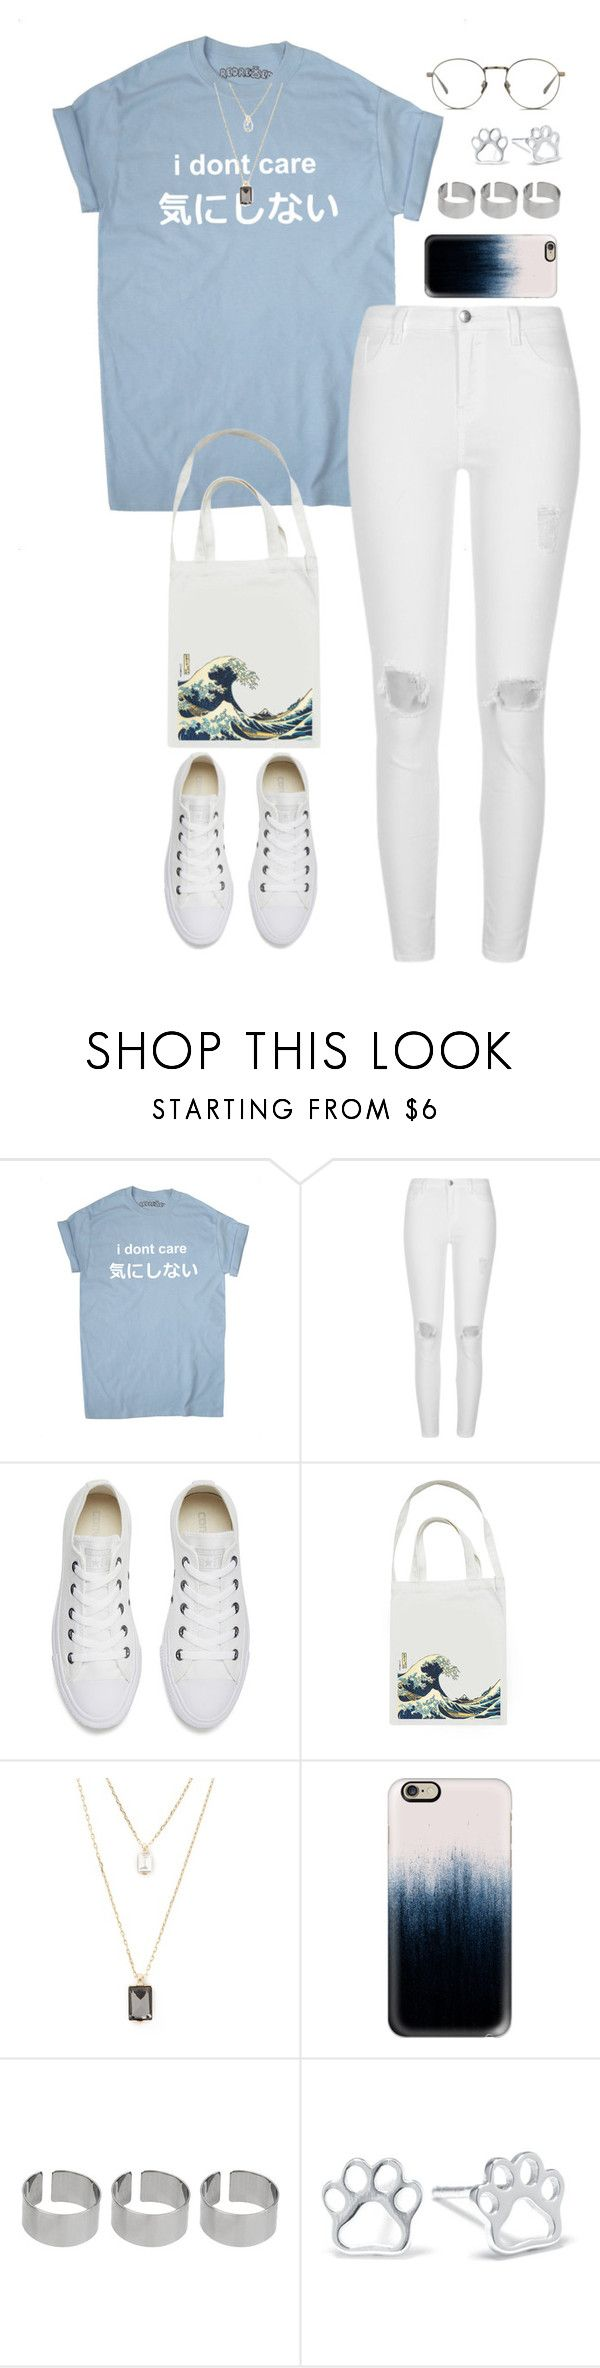 """Untitled #390"" by froyalbiatsii ❤ liked on Polyvore featuring River Island, Converse, Bags 'n Sacks, Forever 21, Casetify, ASOS, Belk Silverworks and Linda Farrow"